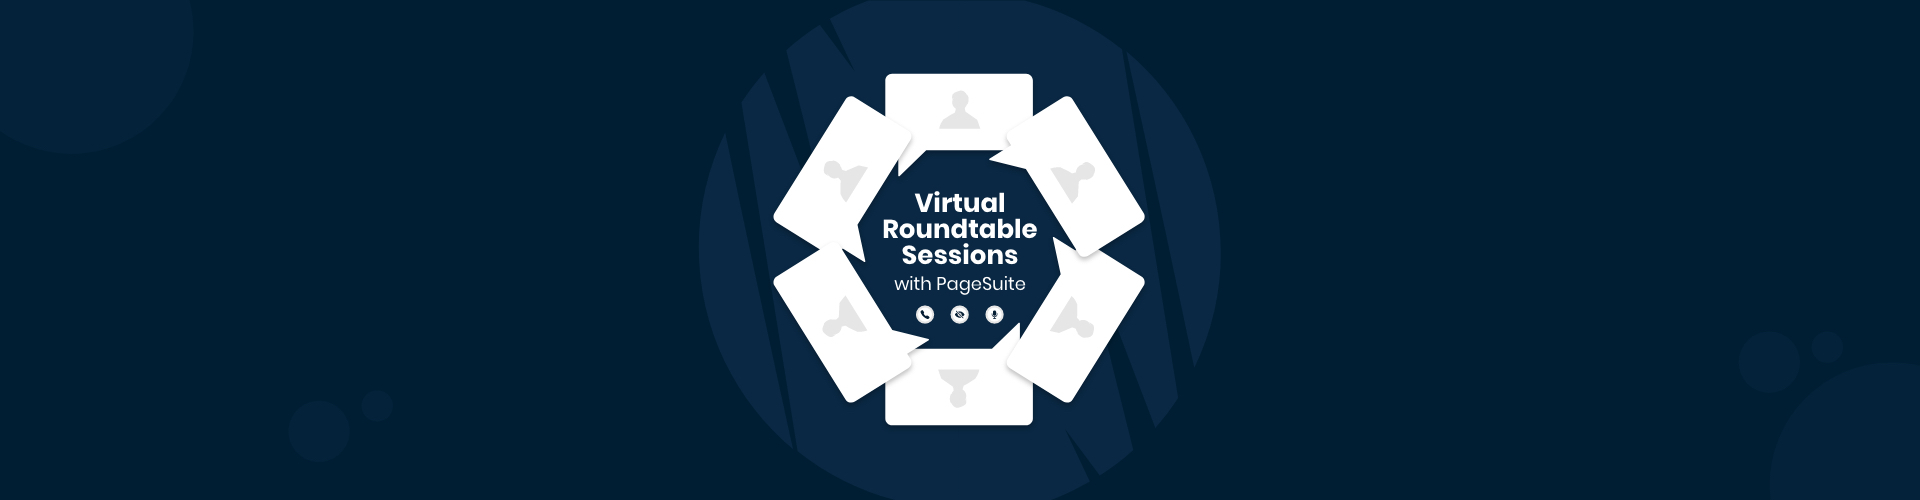 Virtual Roundtable Sessions with PageSuite